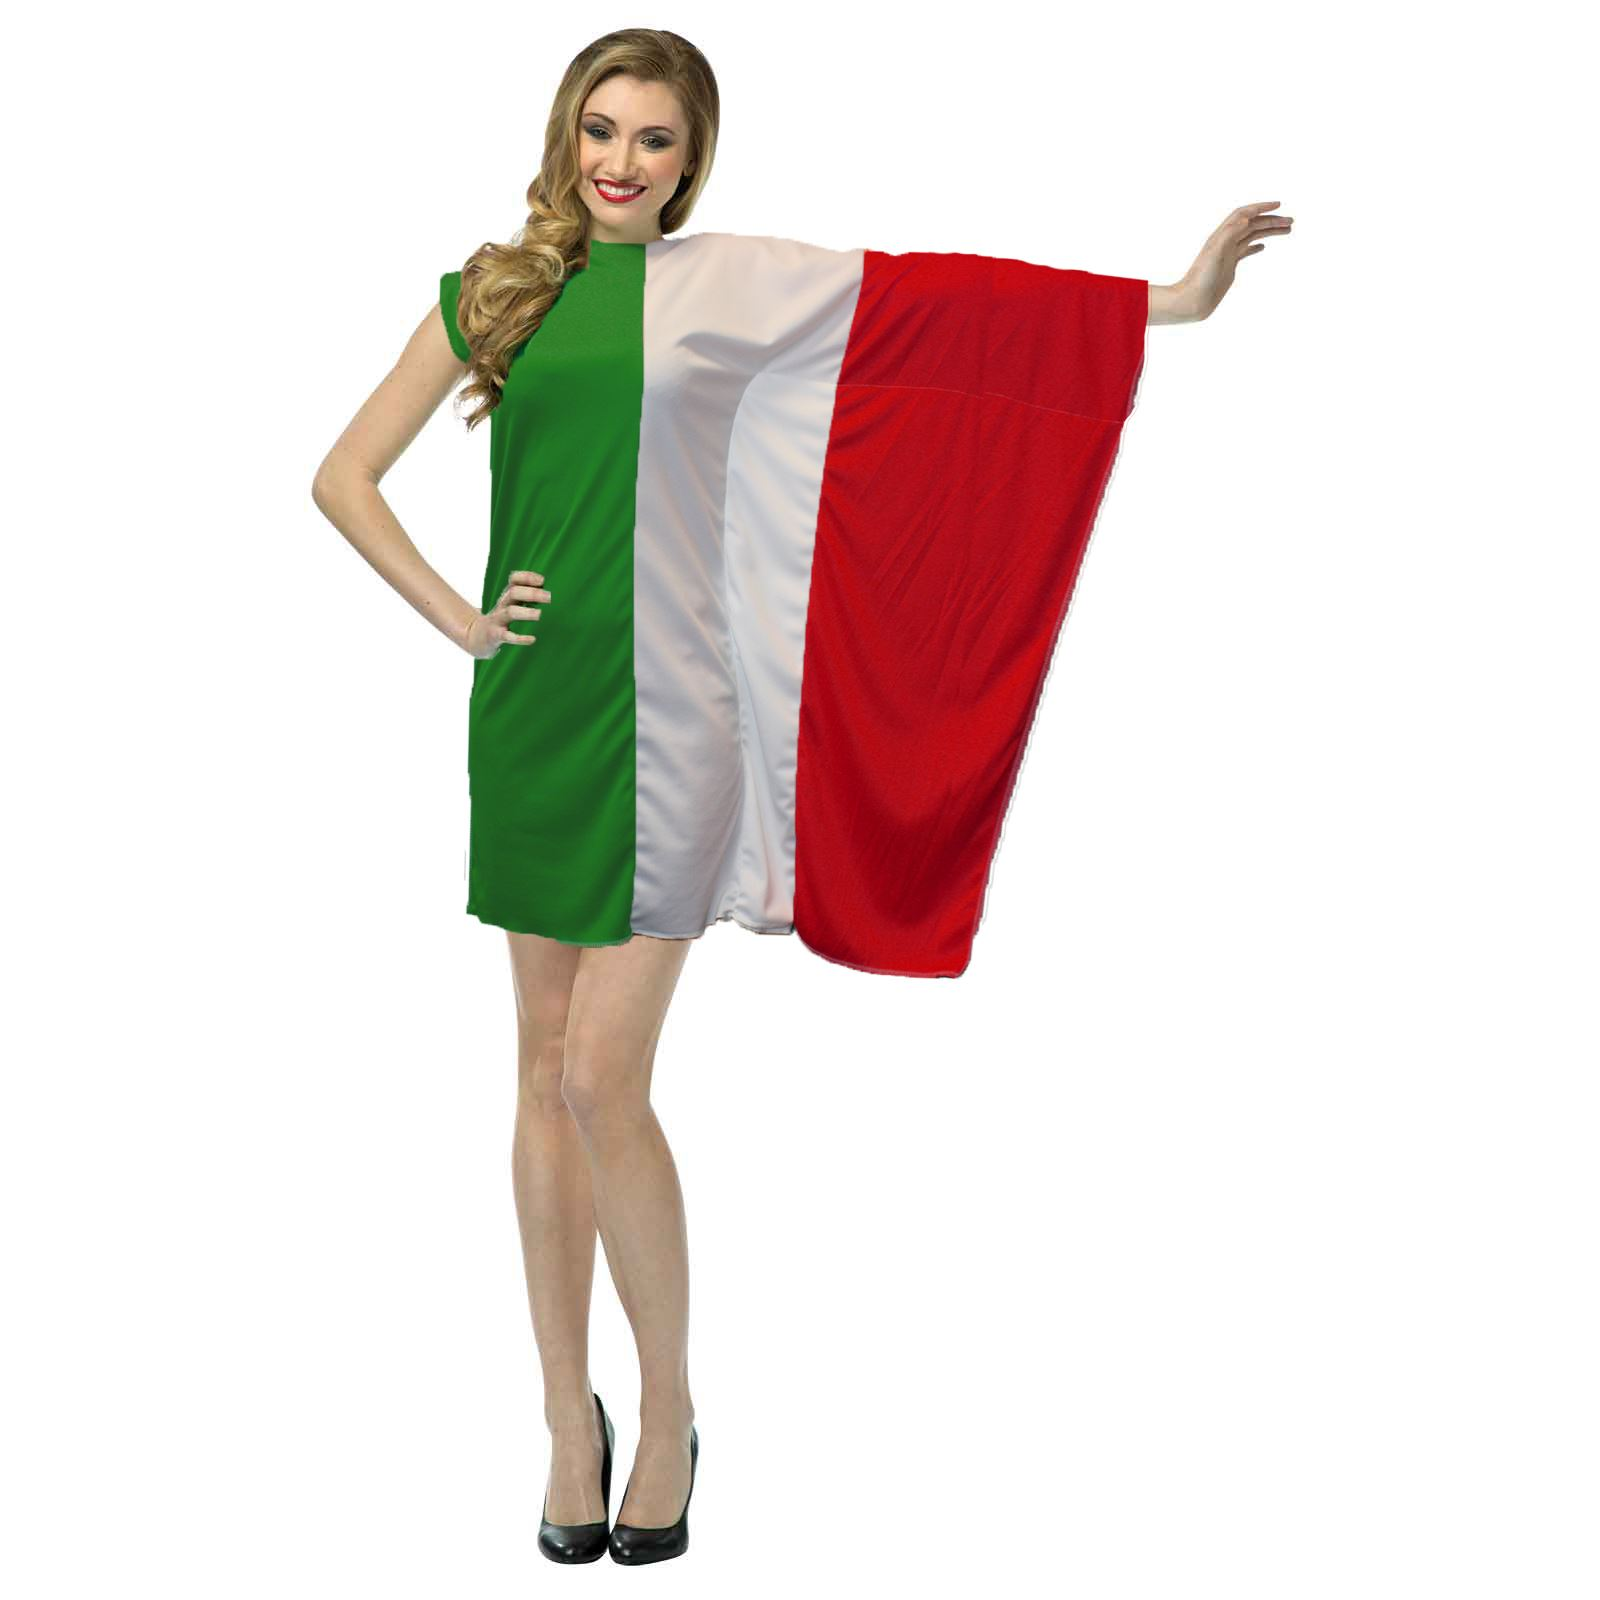 Popular Italian Fashion On Indian Streets For Chic Summer Street Style